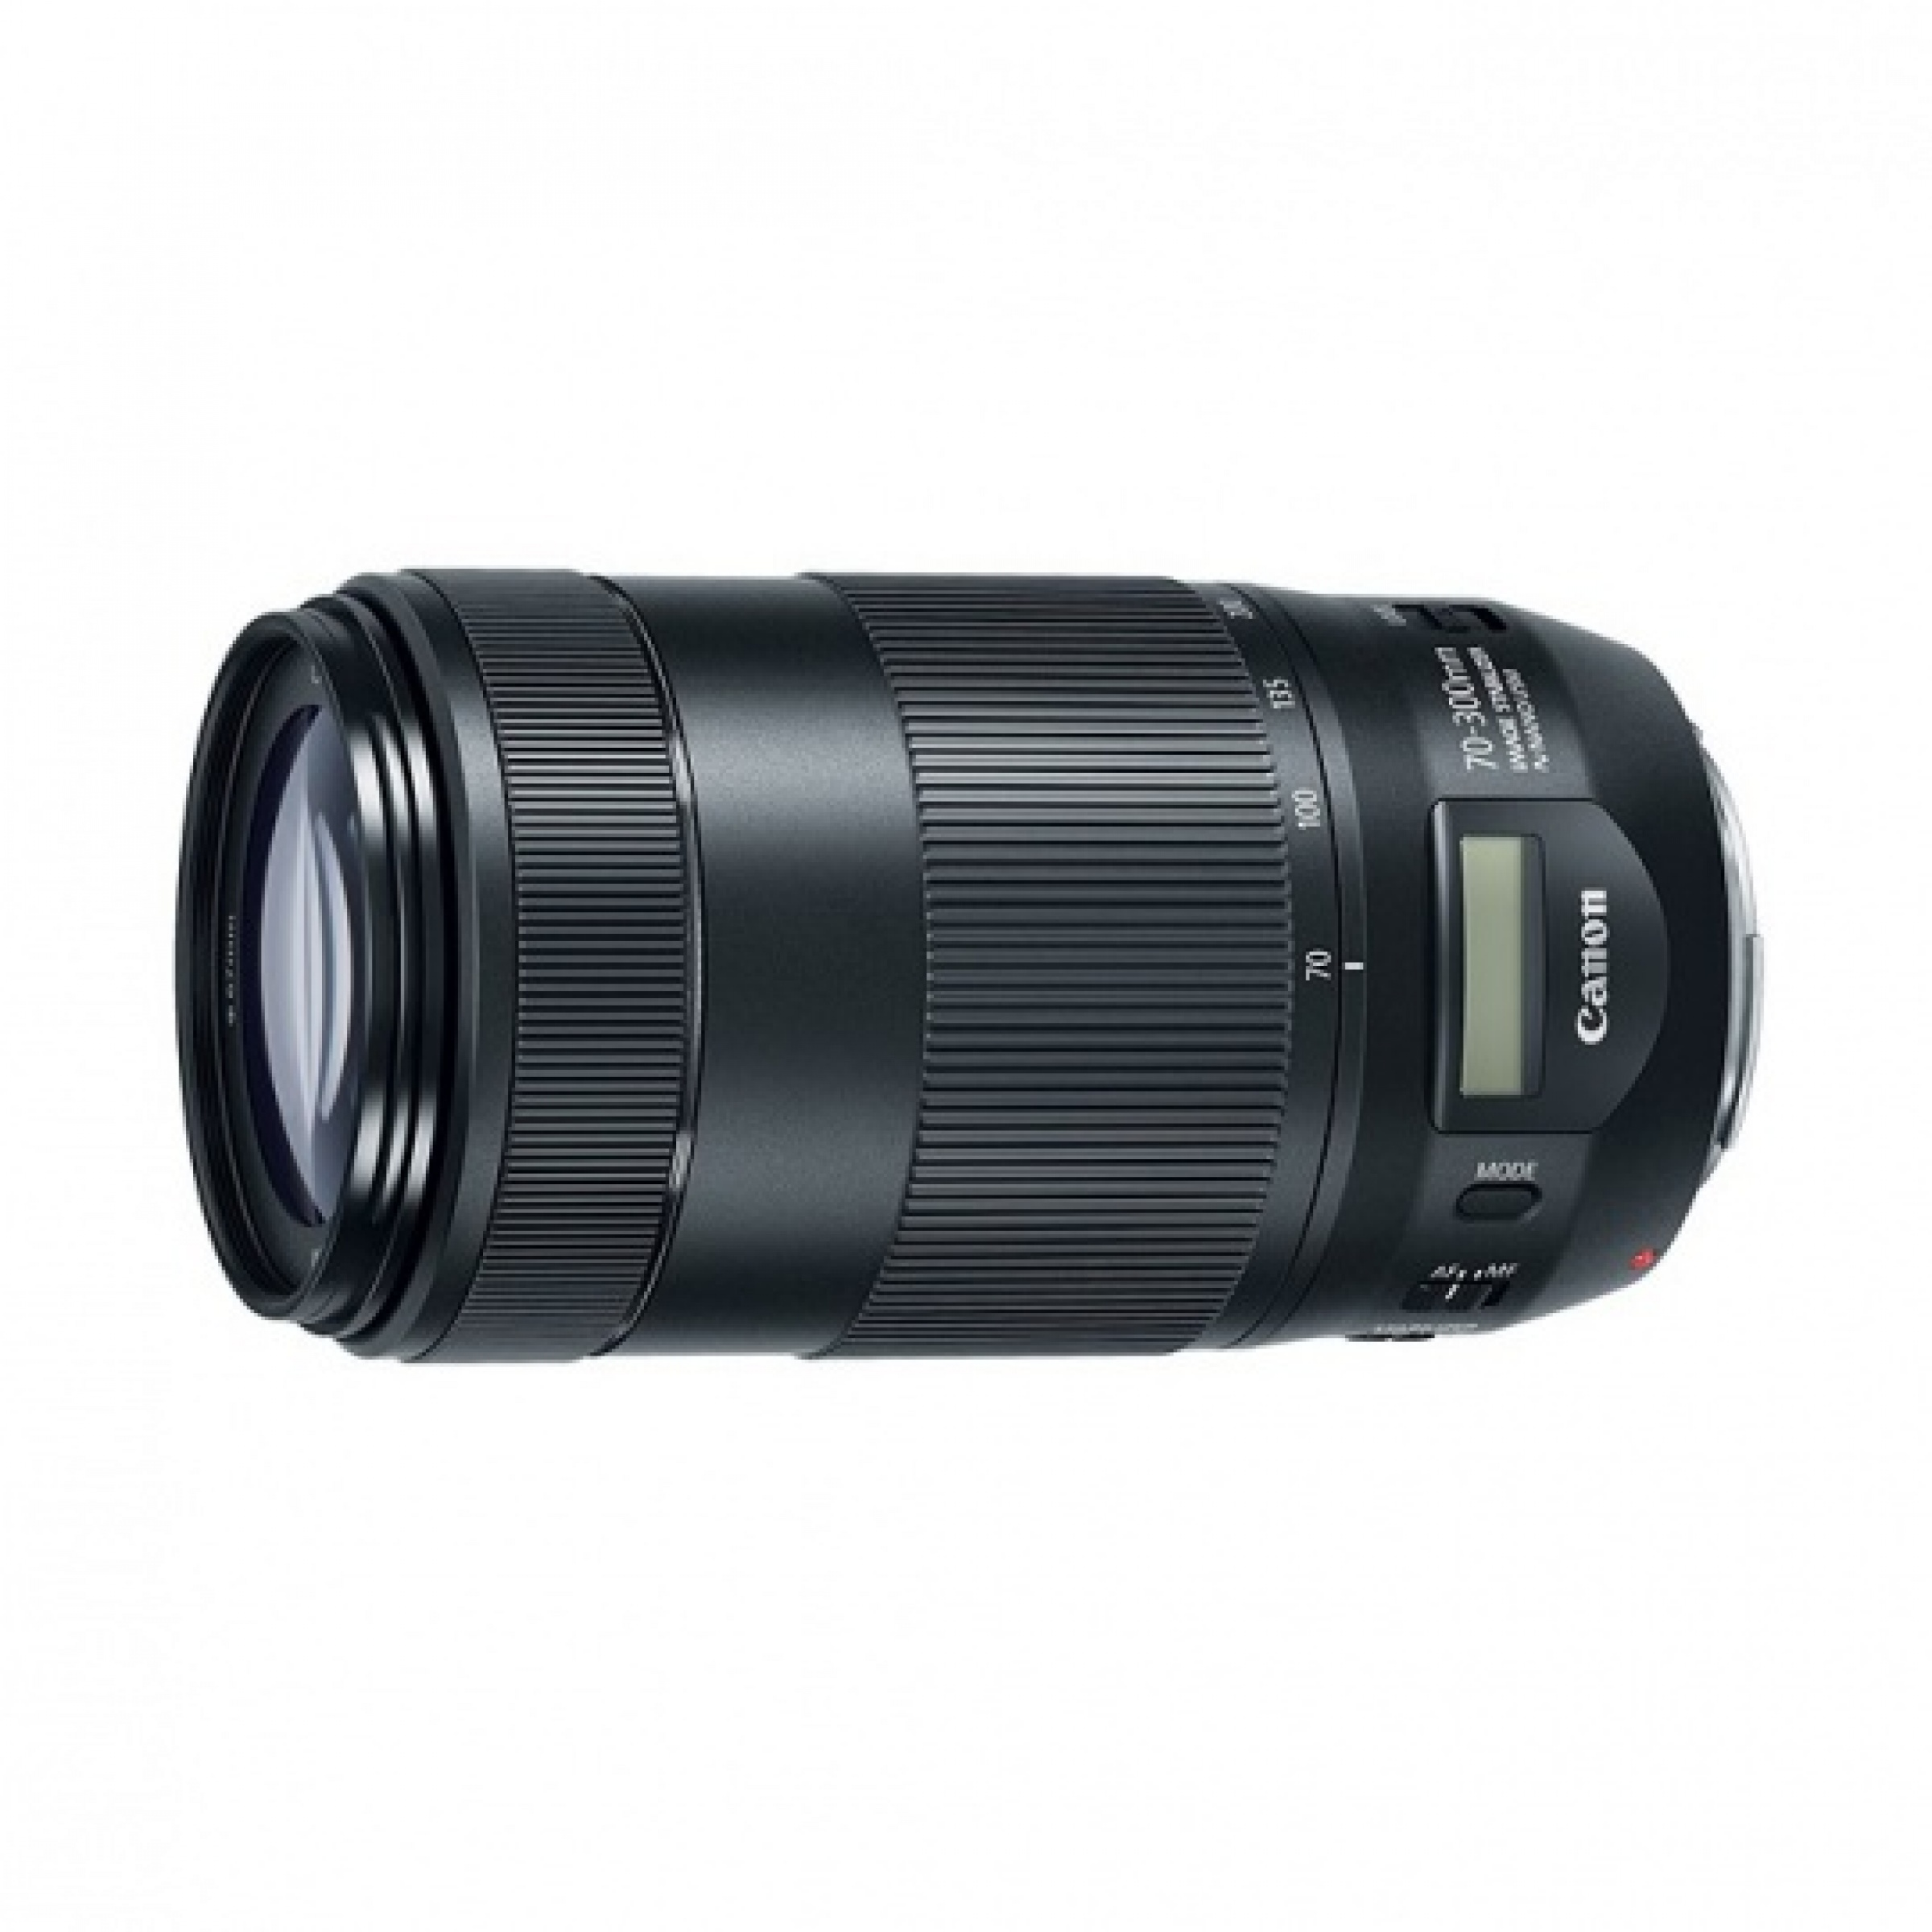 Canon-EF-70-300mm-f-4-0-56-IS-II-USM